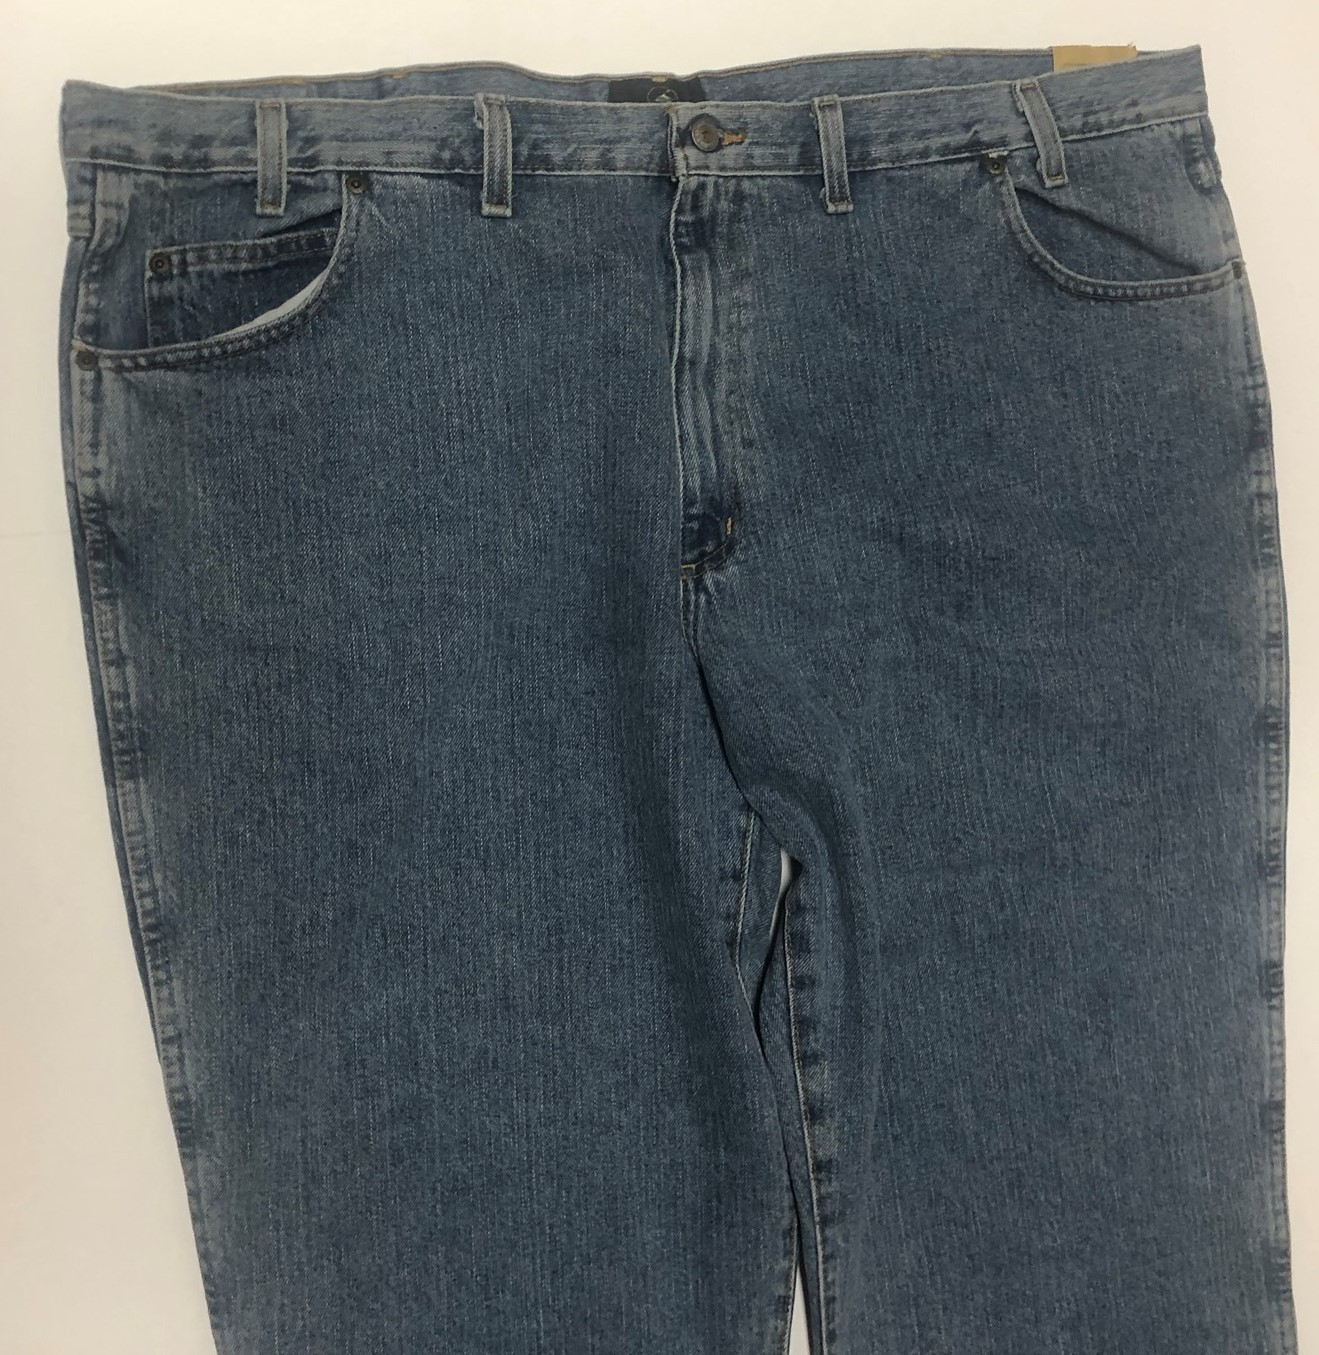 Red Head Relaxed Men's Blue Jeans Sz 48/30 Medium Stone Wash image 5